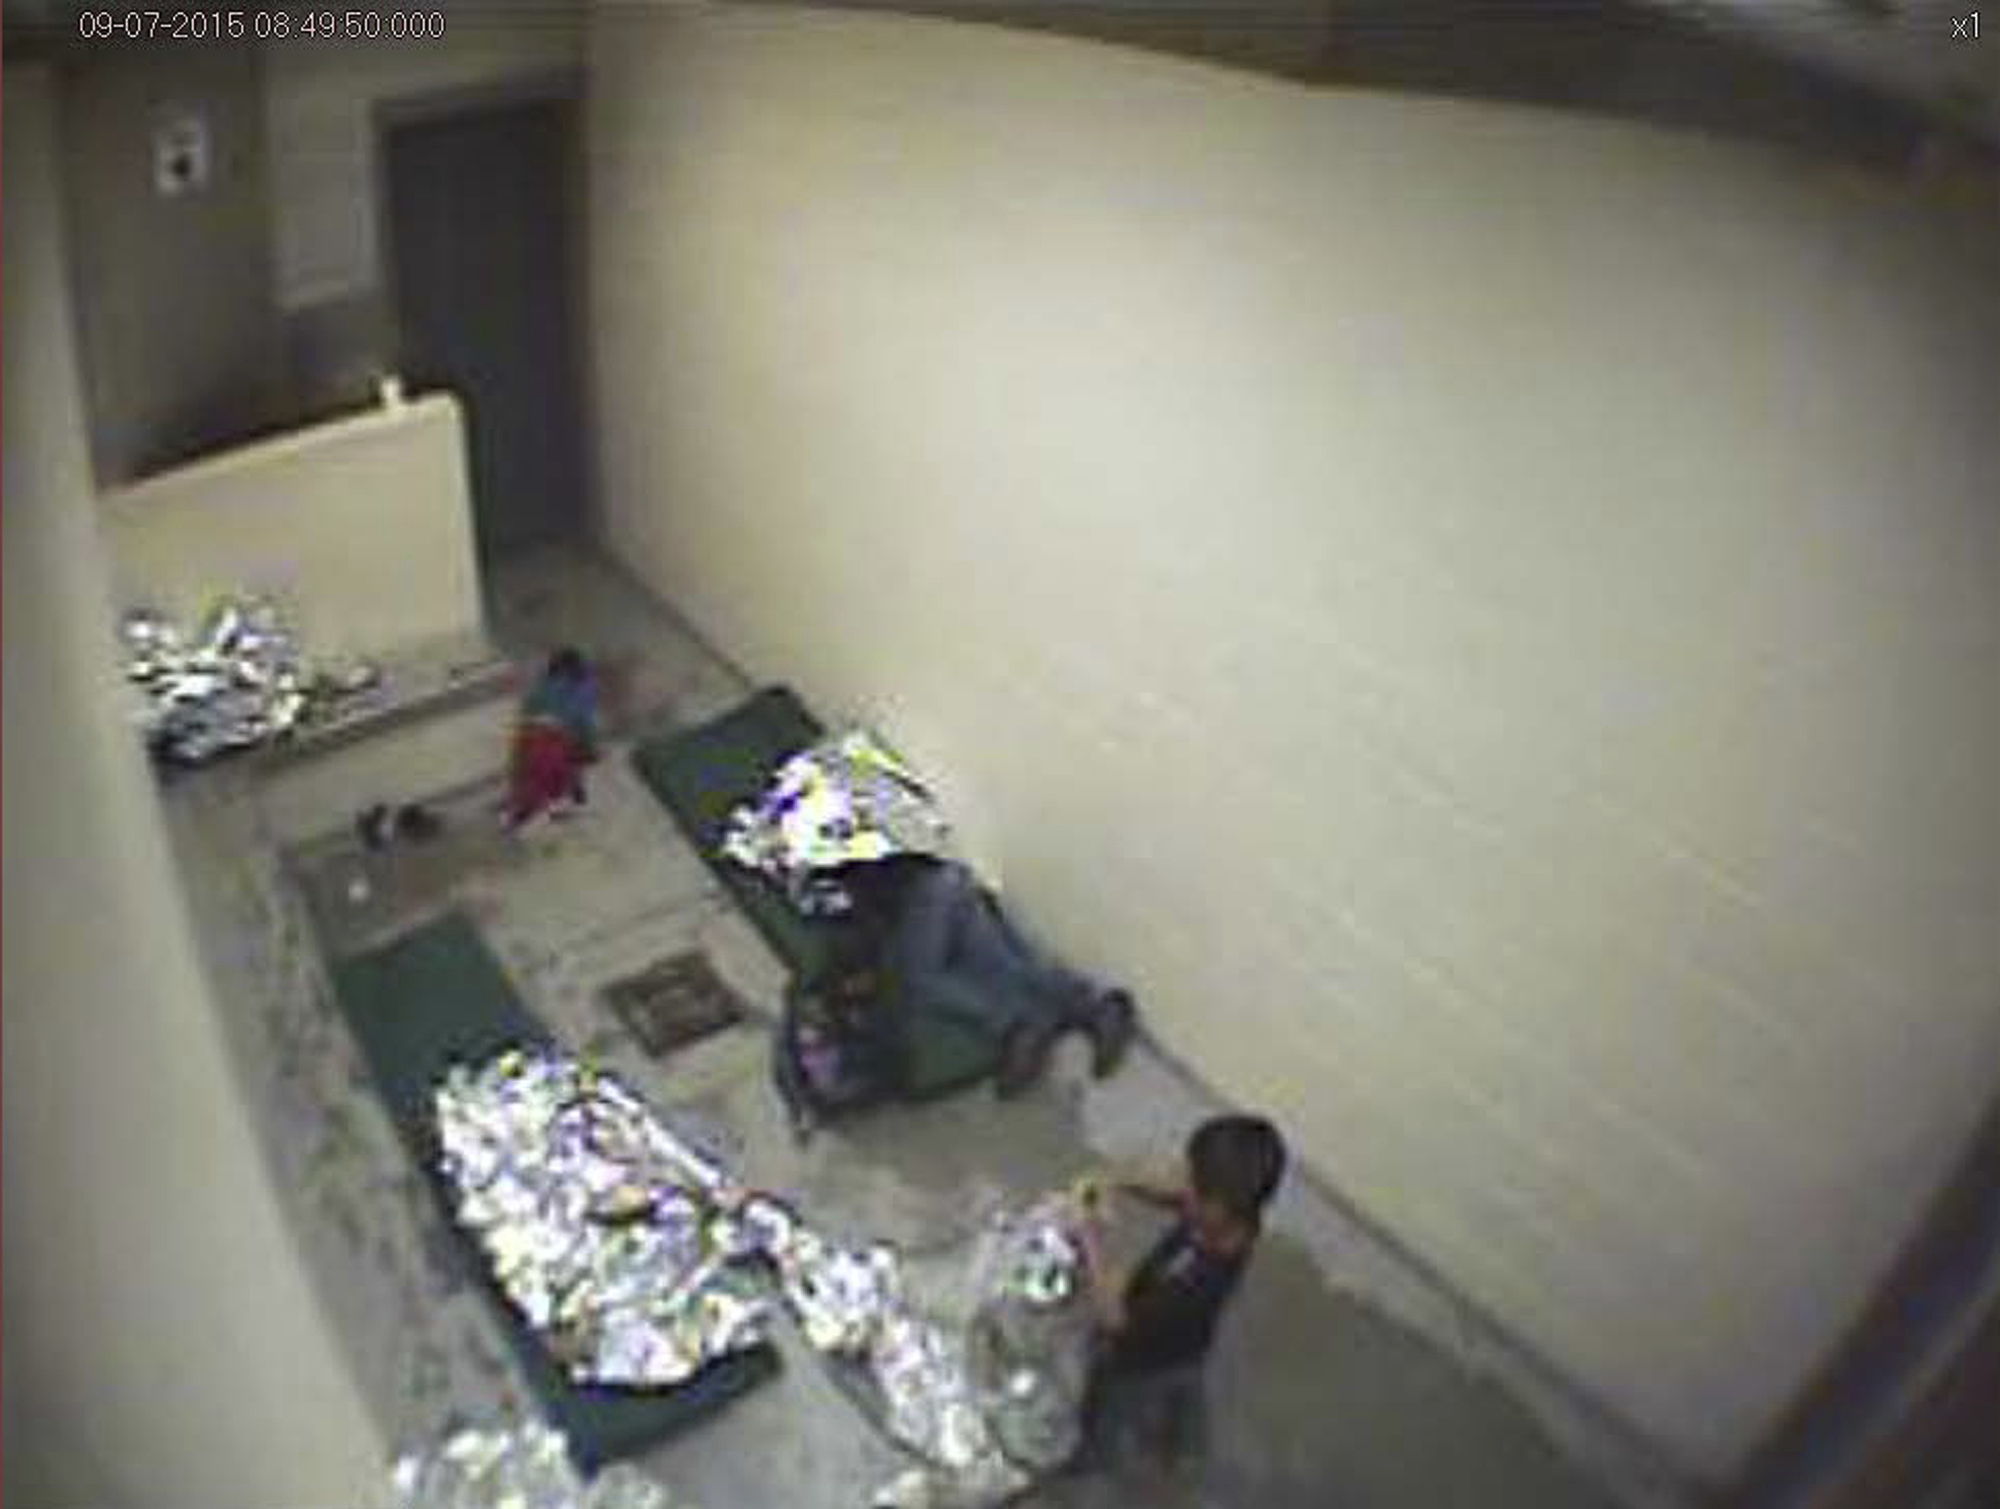 This image made from U.S. Border Patrol surveillance video shows a child crawling on the concrete floor near the bathroom area of a holding cell, and a woman and children wrapped in Mylar sheets at a U.S. Customs and Border Protection station in Douglas, Ariz., in September 2015.